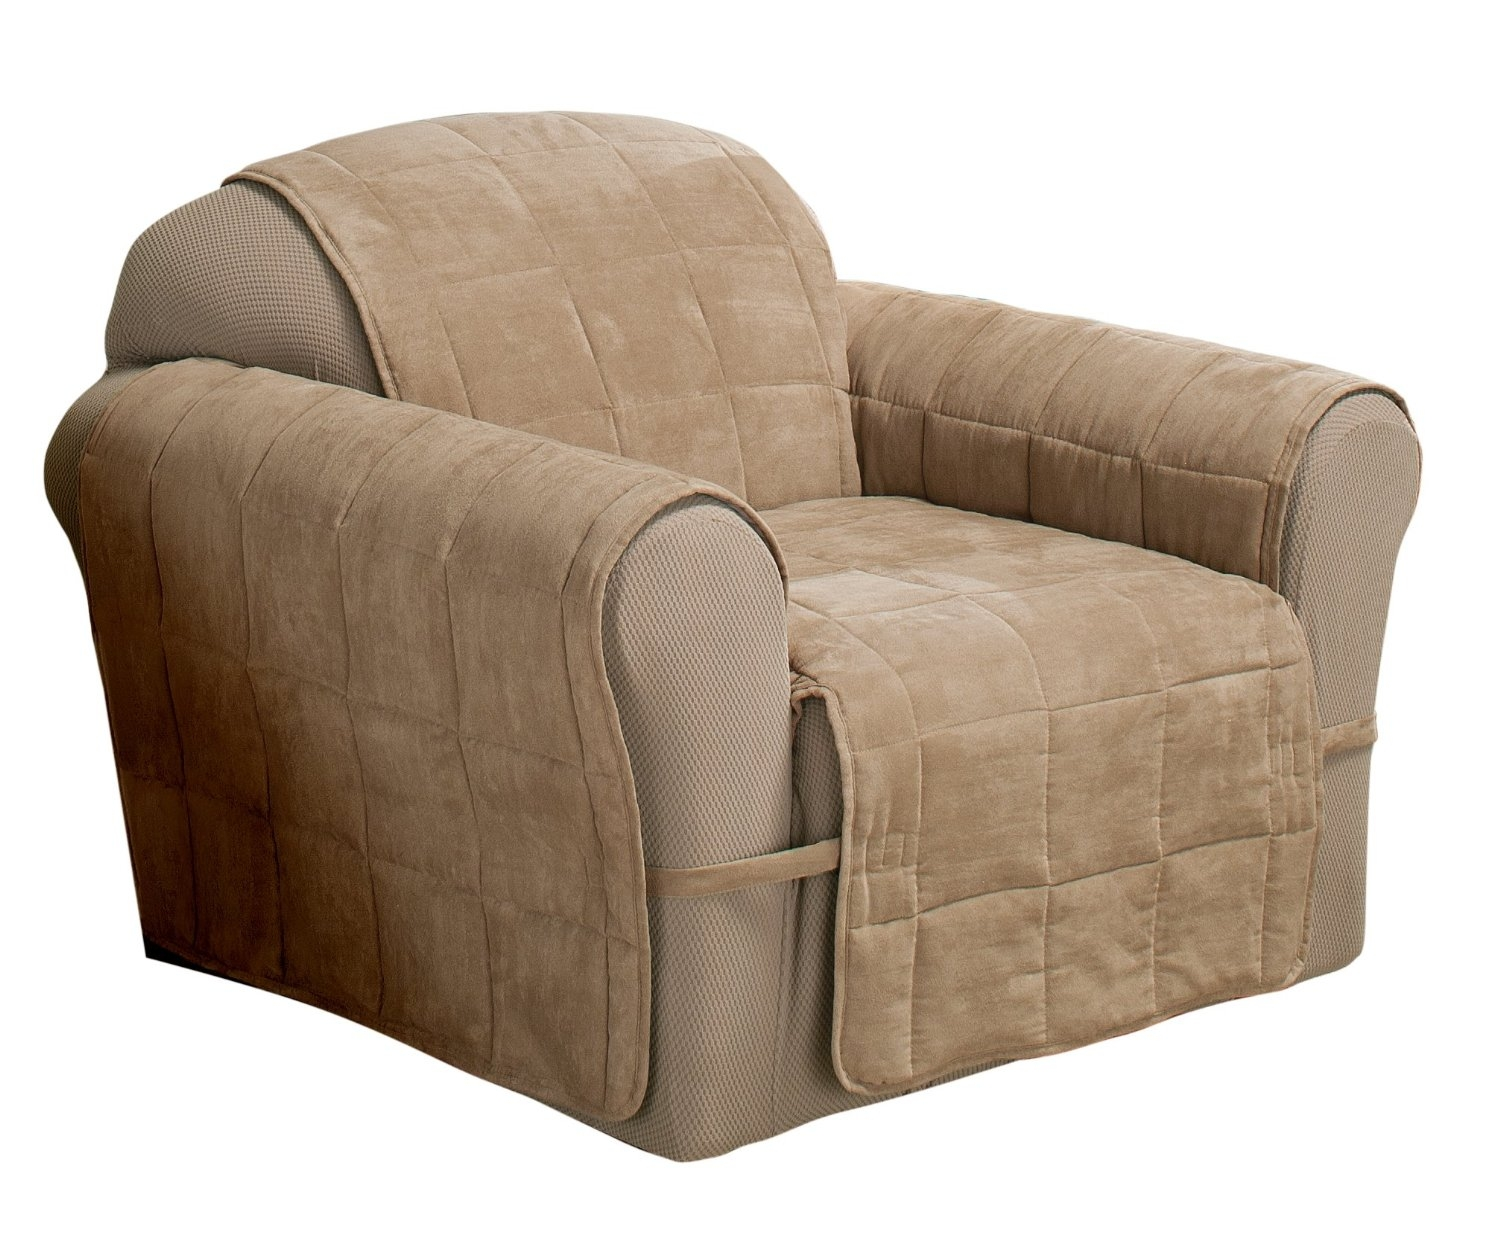 Sofas Center Covers For Sofas Clearance Chair And Loveseats Arm Within Covers For Sofas And Chairs (View 2 of 15)